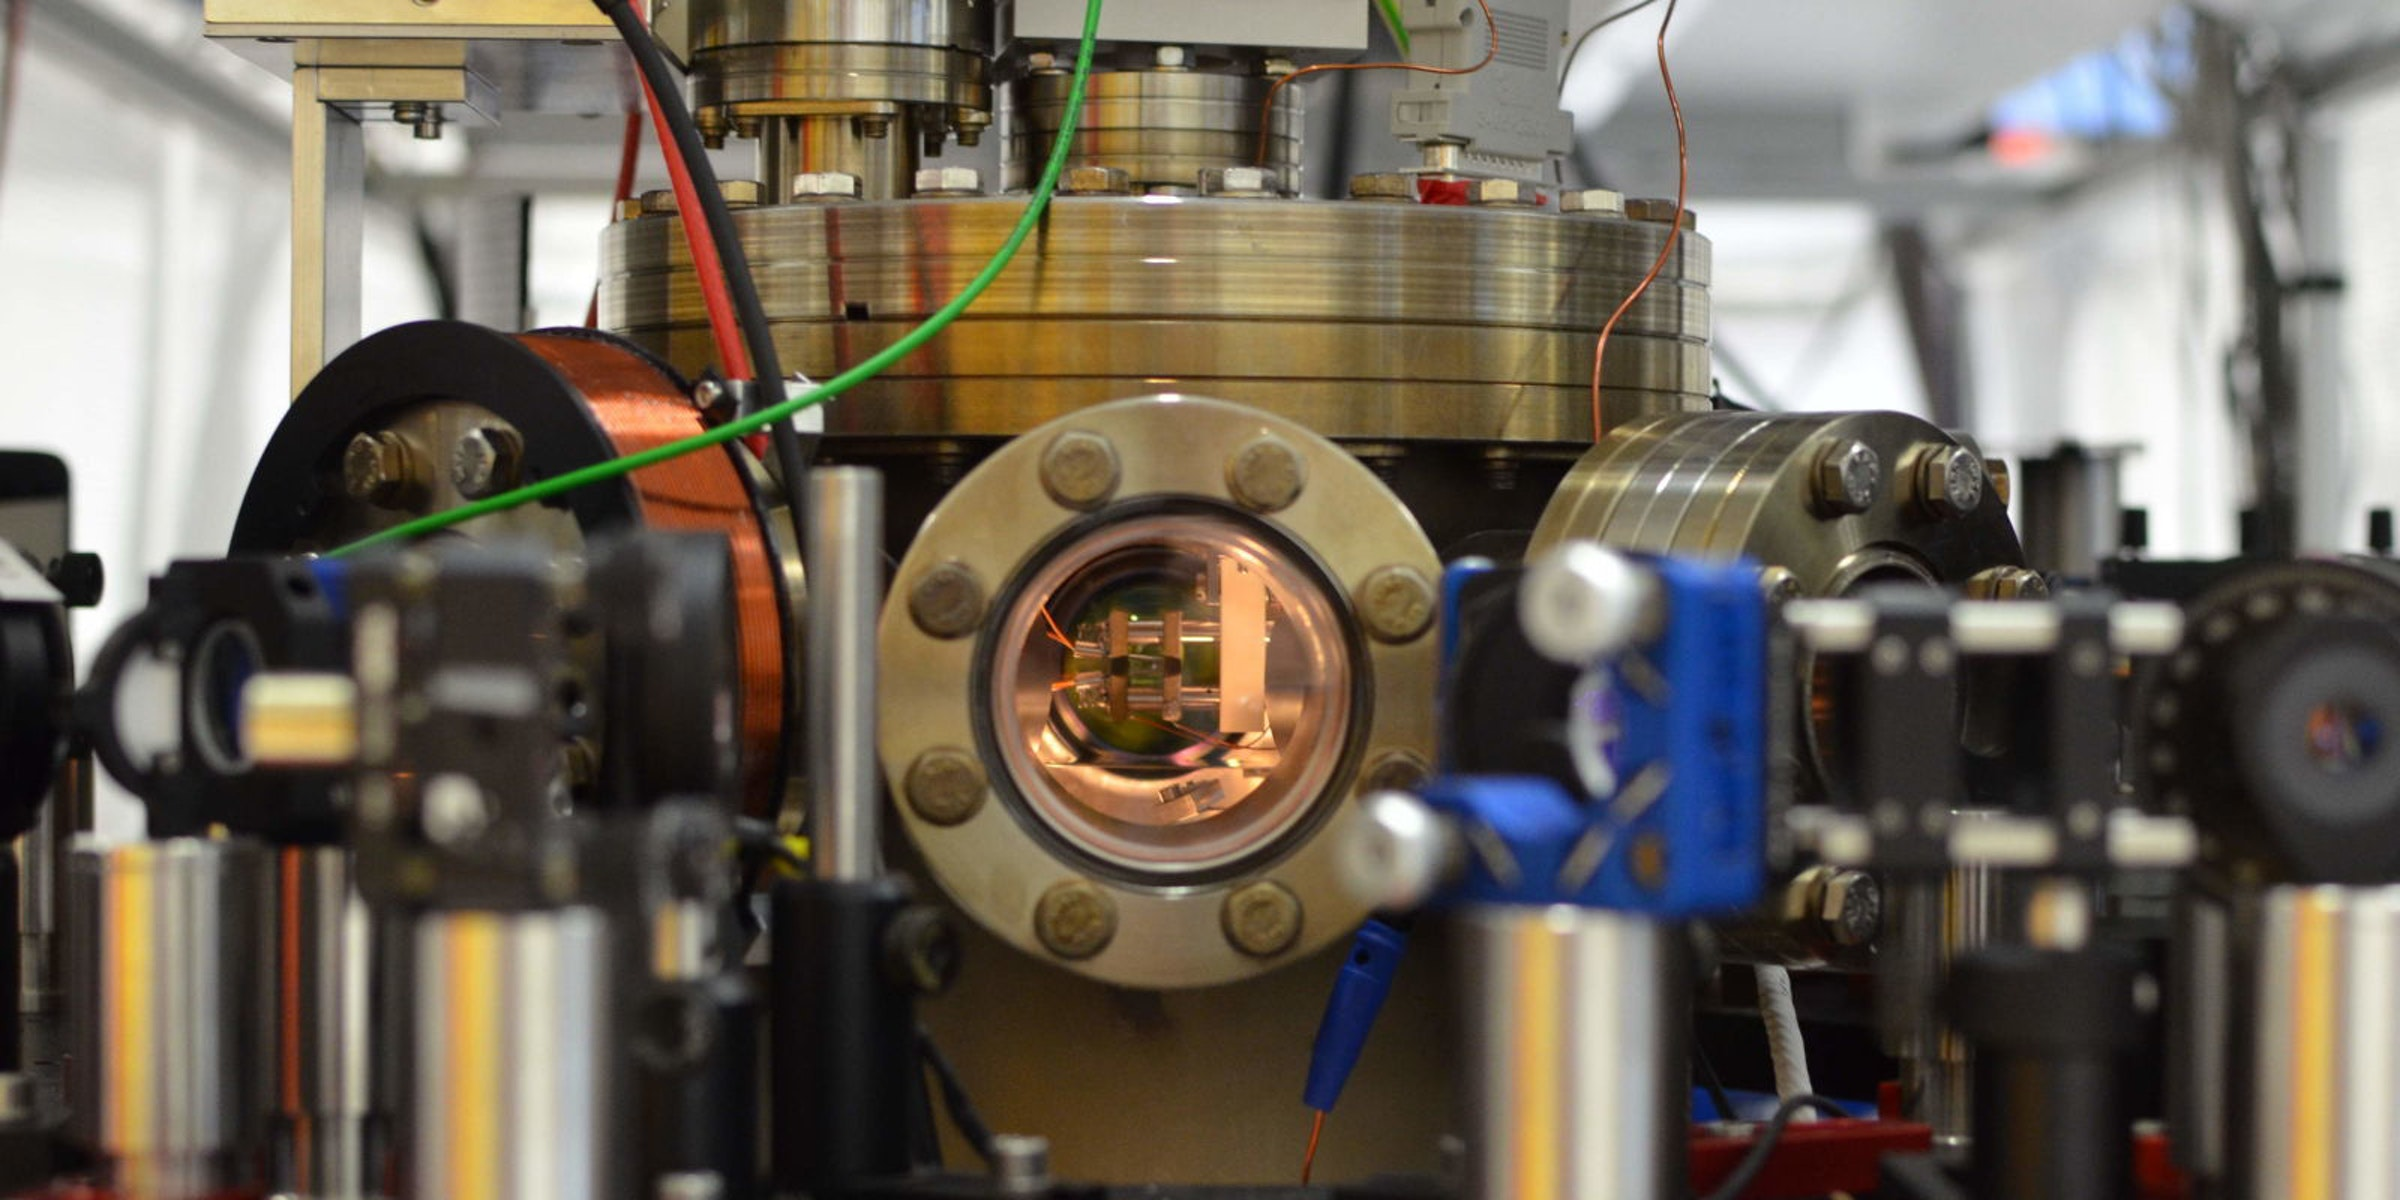 Physicists Built a Super Tiny Engine Powered by a Single Calcium Atom